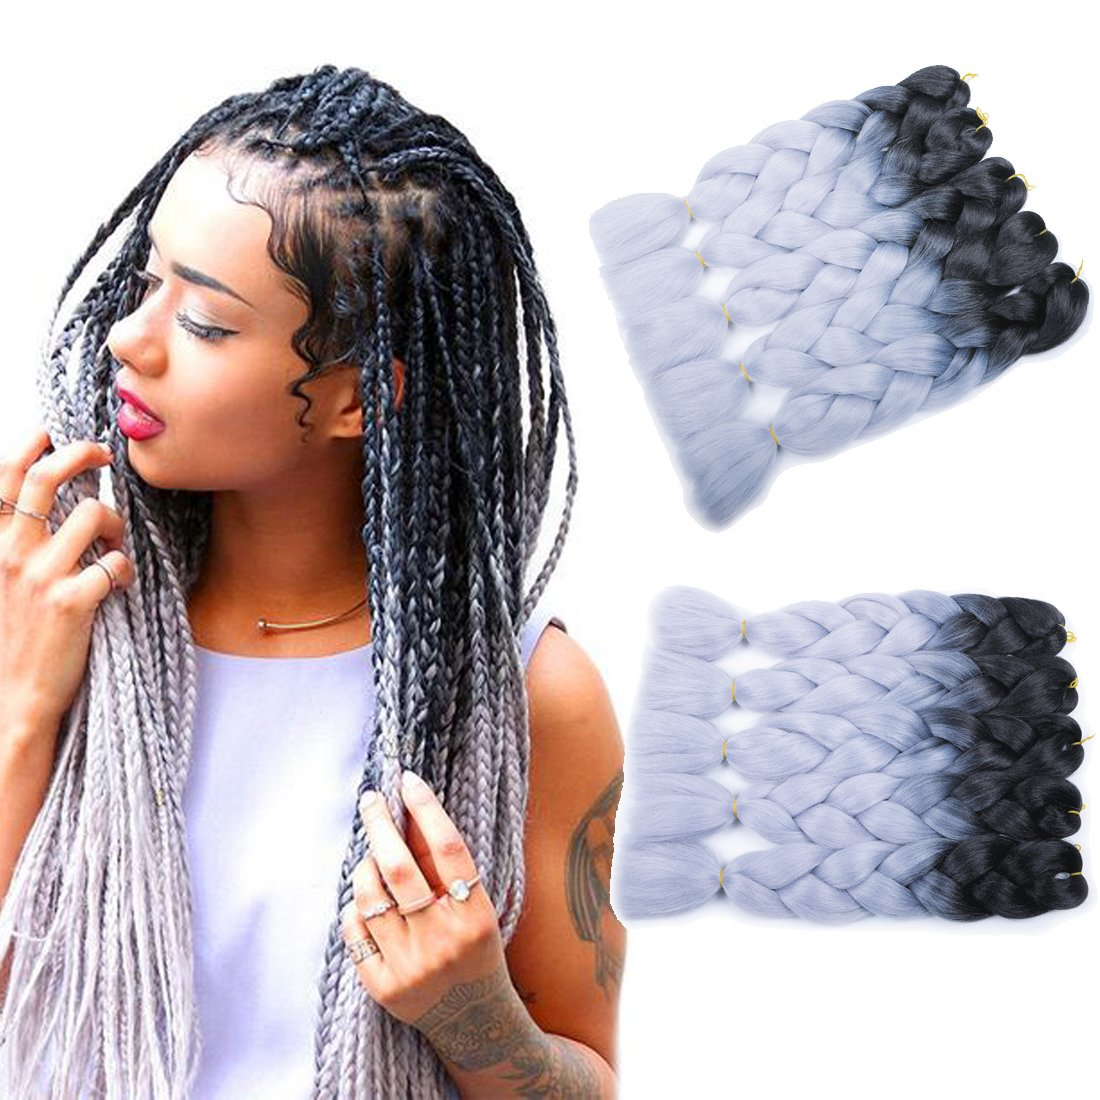 MSHAIR Ombre Jumbo Braiding Hair Extension Synthetic Kanekalon Fiber for Twist Braiding Hair Black Silver Gray Color 24 Inch 5 Pieces/lot by MSHAIR